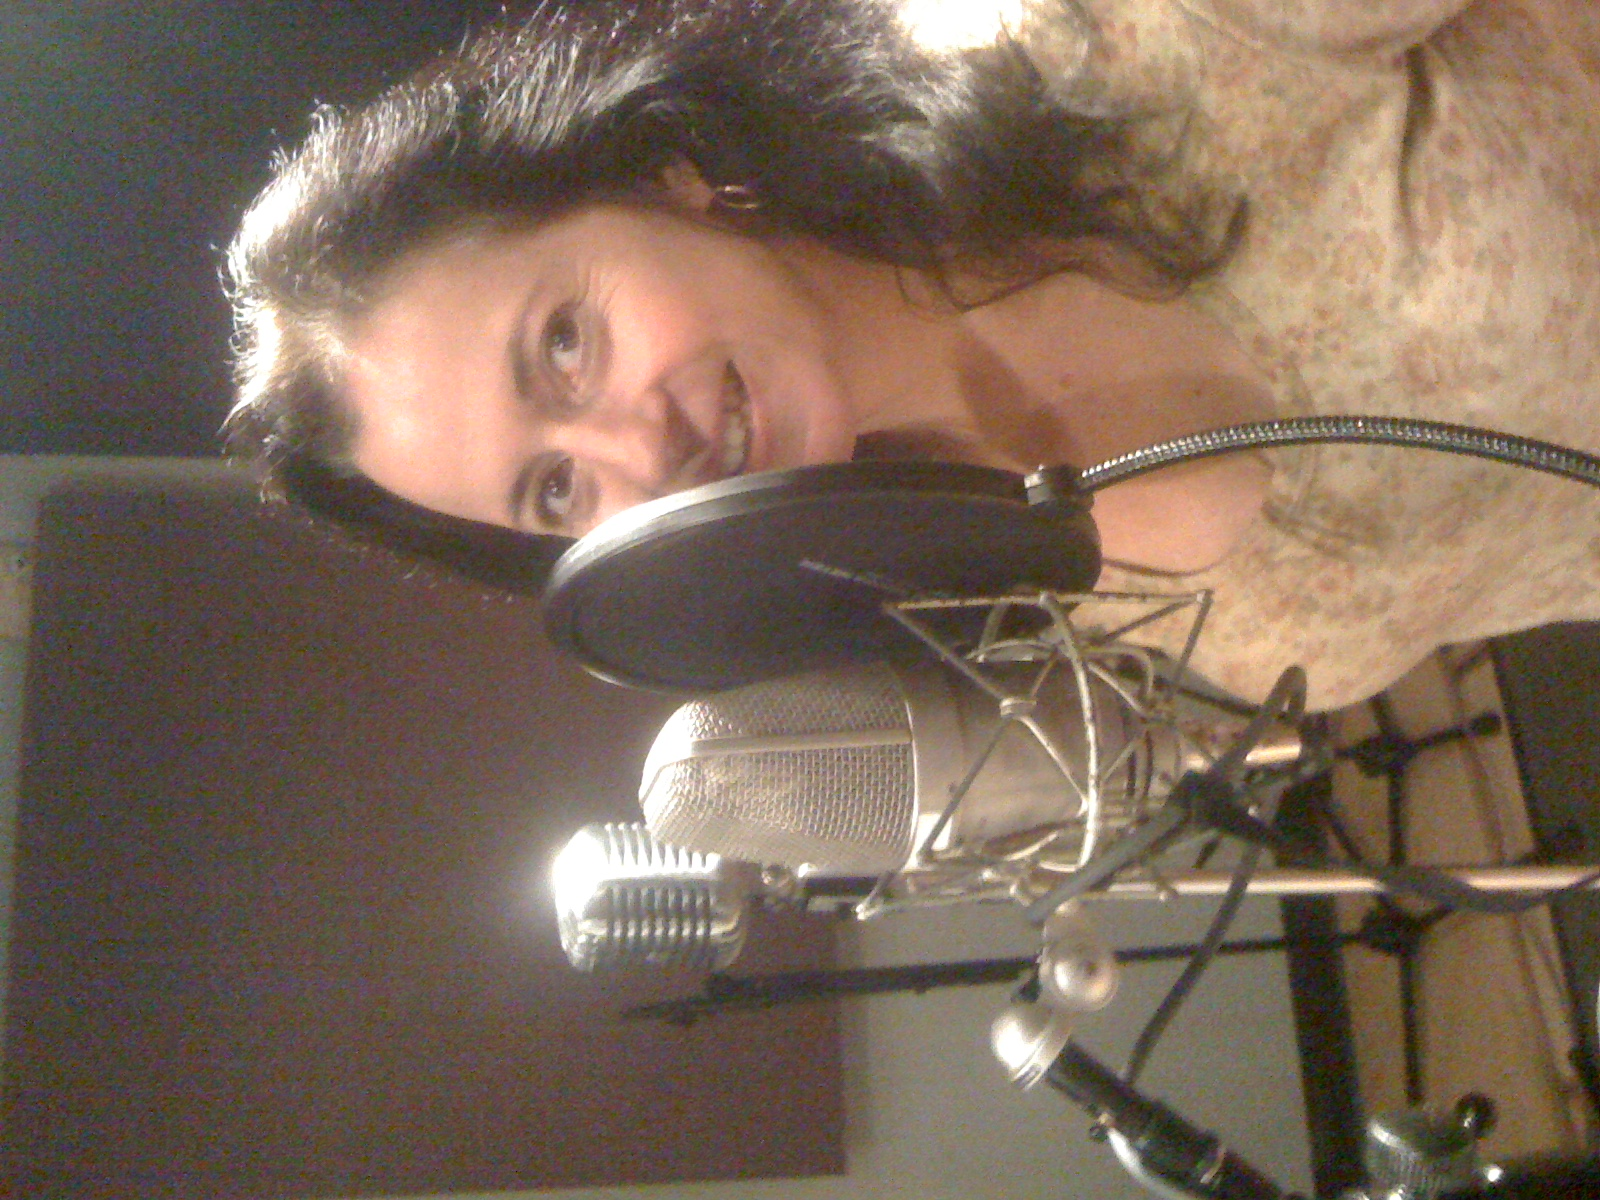 Melina in the studio